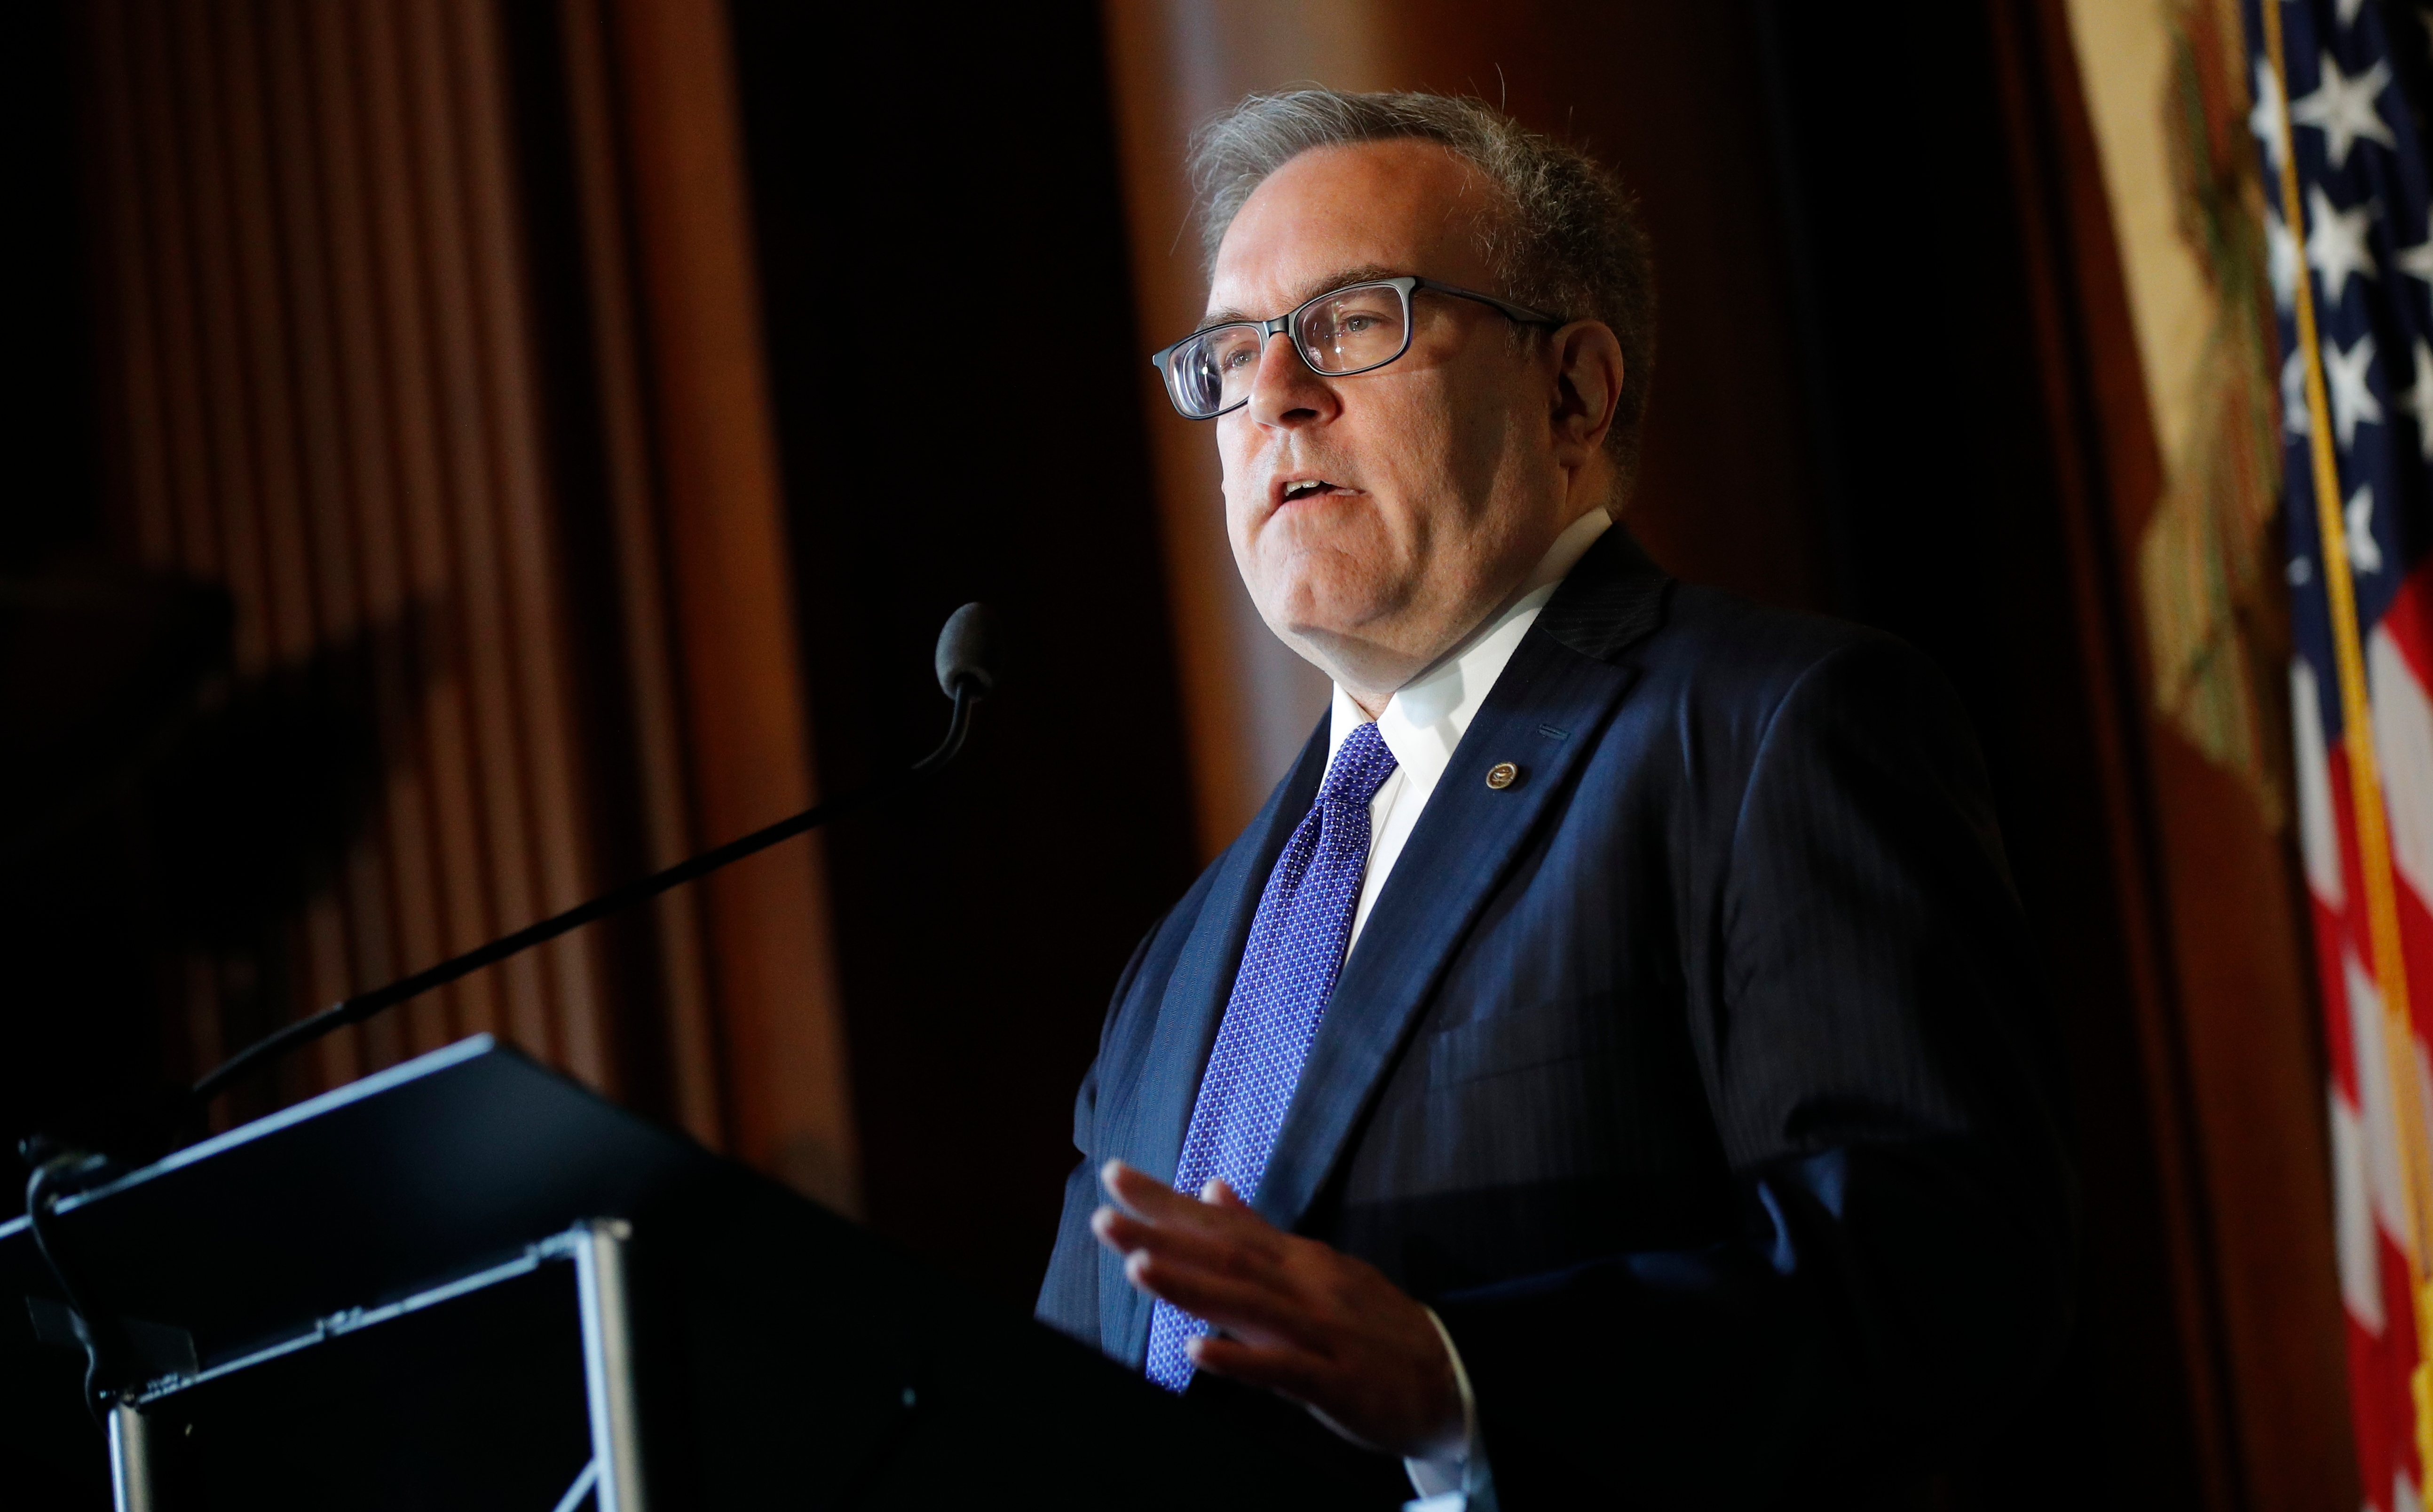 U.S. Environmental Protection Agency (EPA) Acting Administrator Andrew Wheeler addresses staff at EPA headquarters in Washington